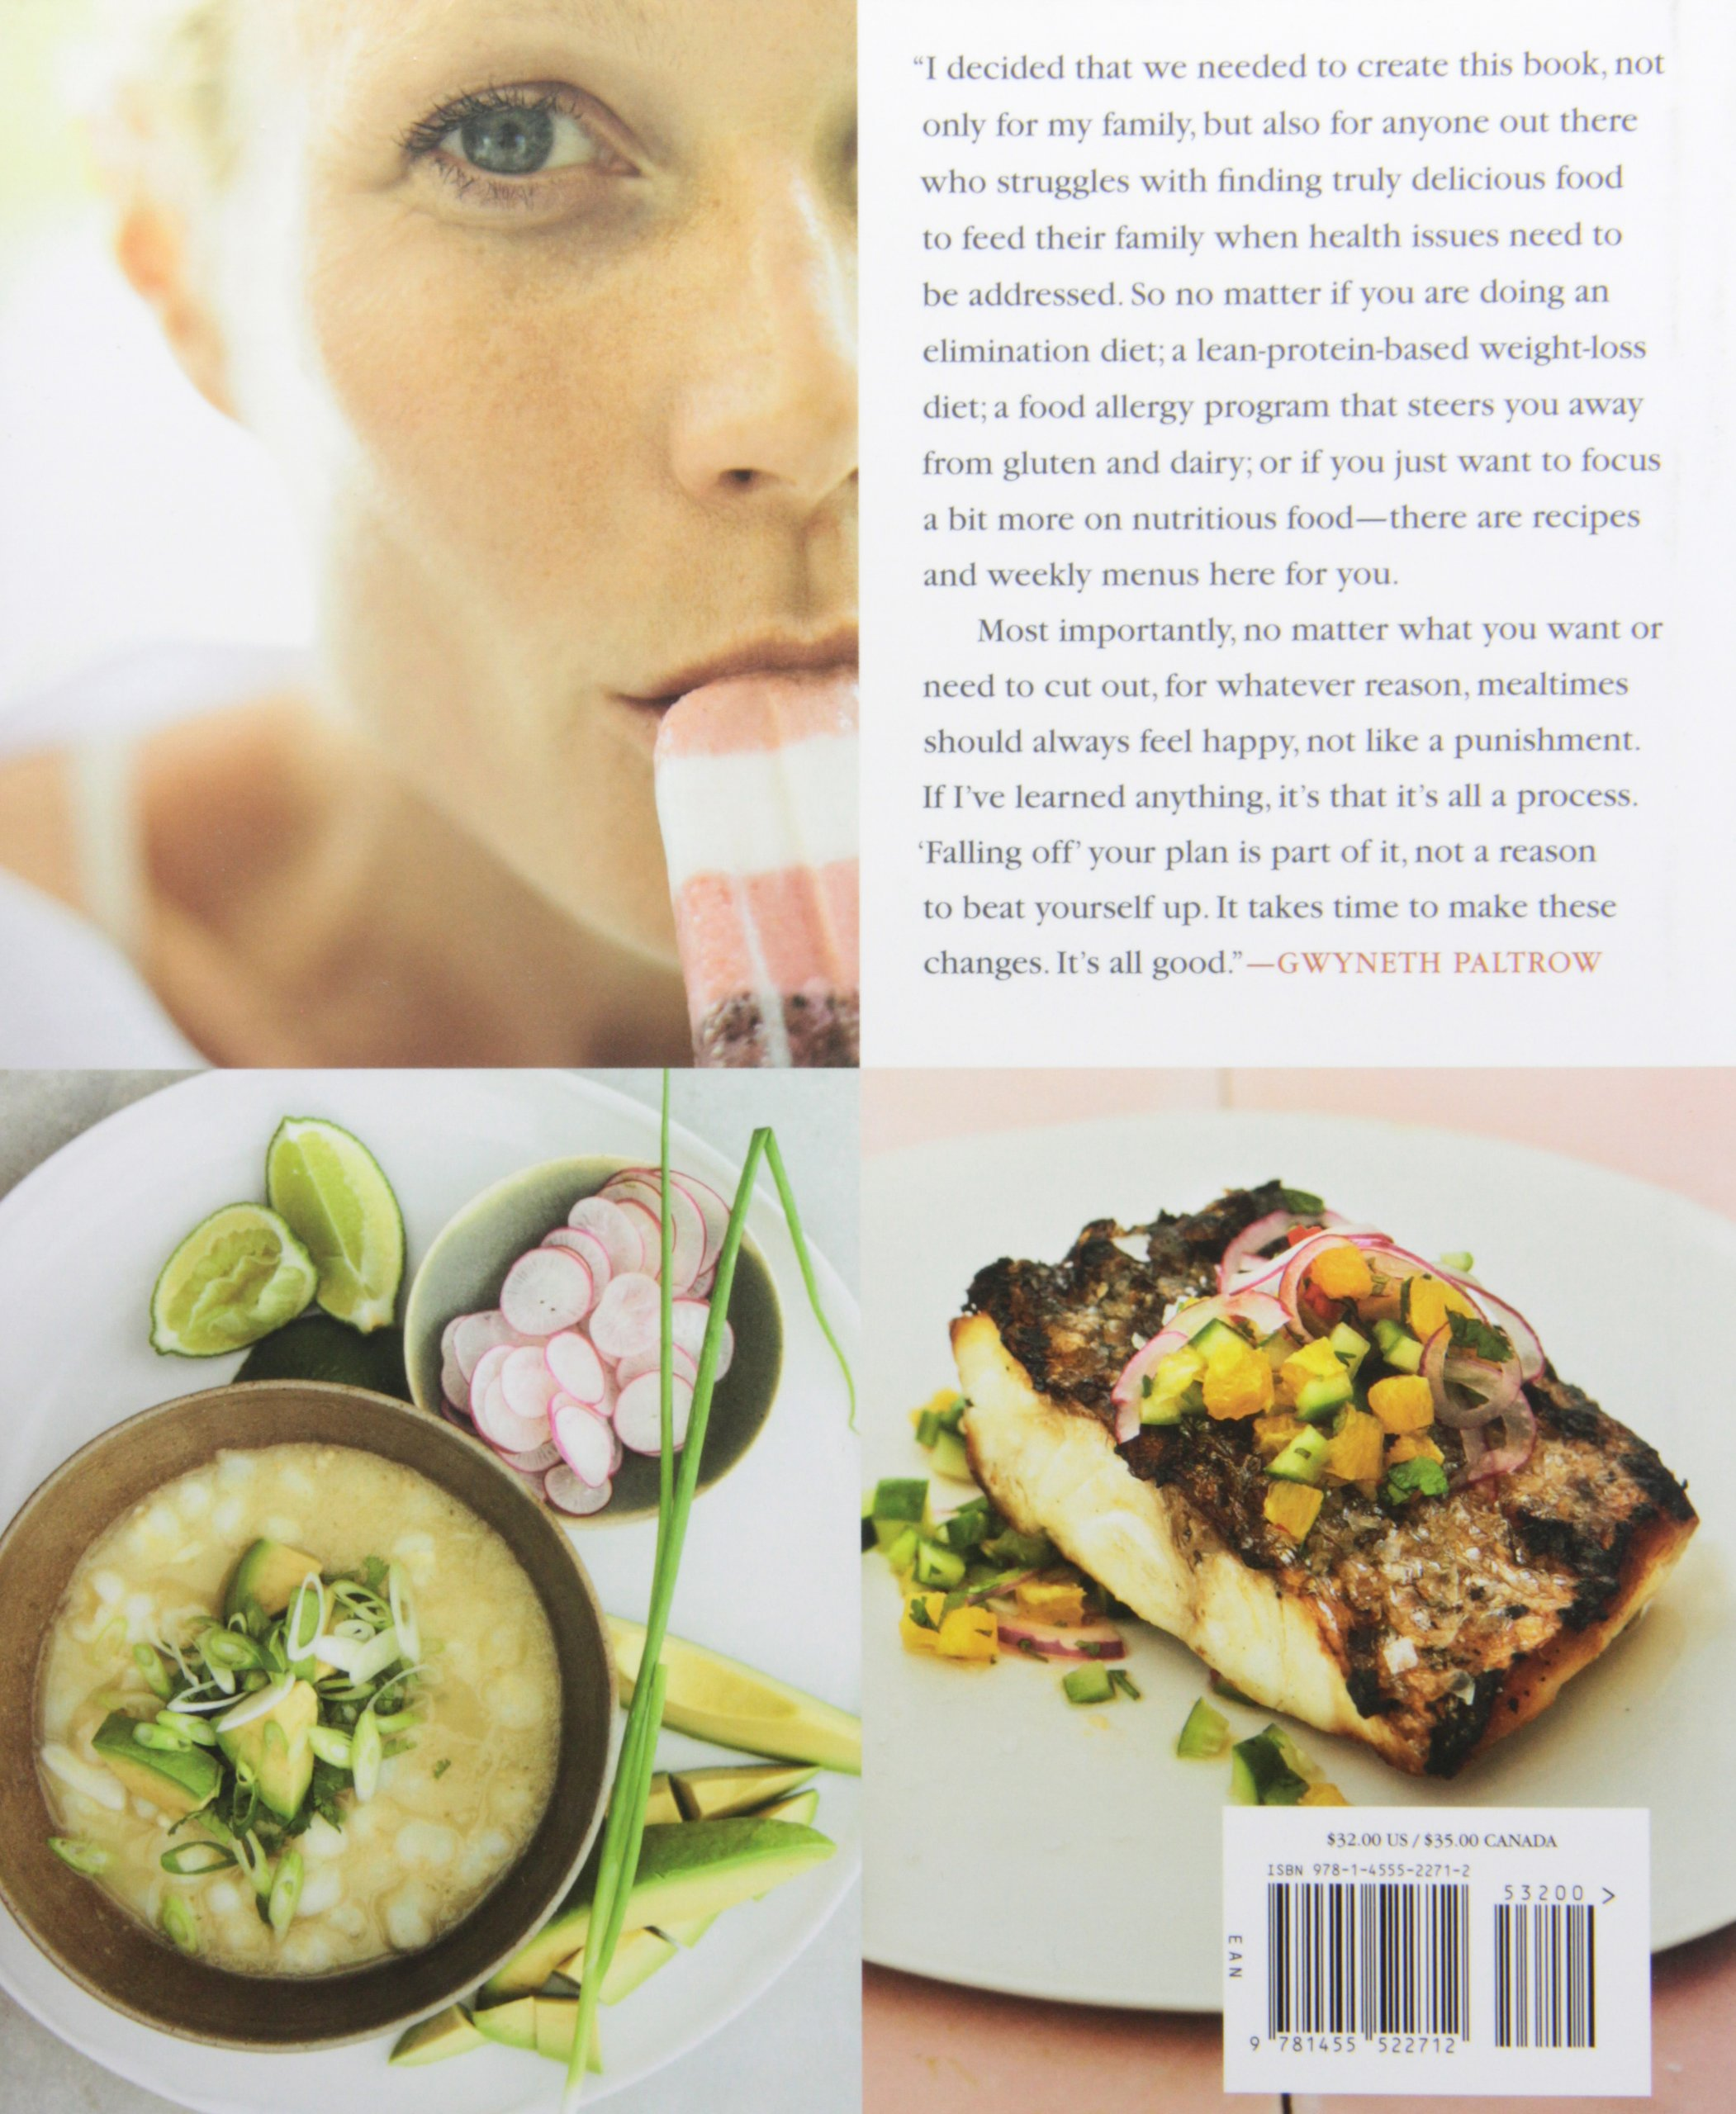 Its all good delicious easy recipes that will make you look good its all good delicious easy recipes that will make you look good and feel great gwyneth paltrow julia turshen ditte isager 8601419128631 amazon forumfinder Images